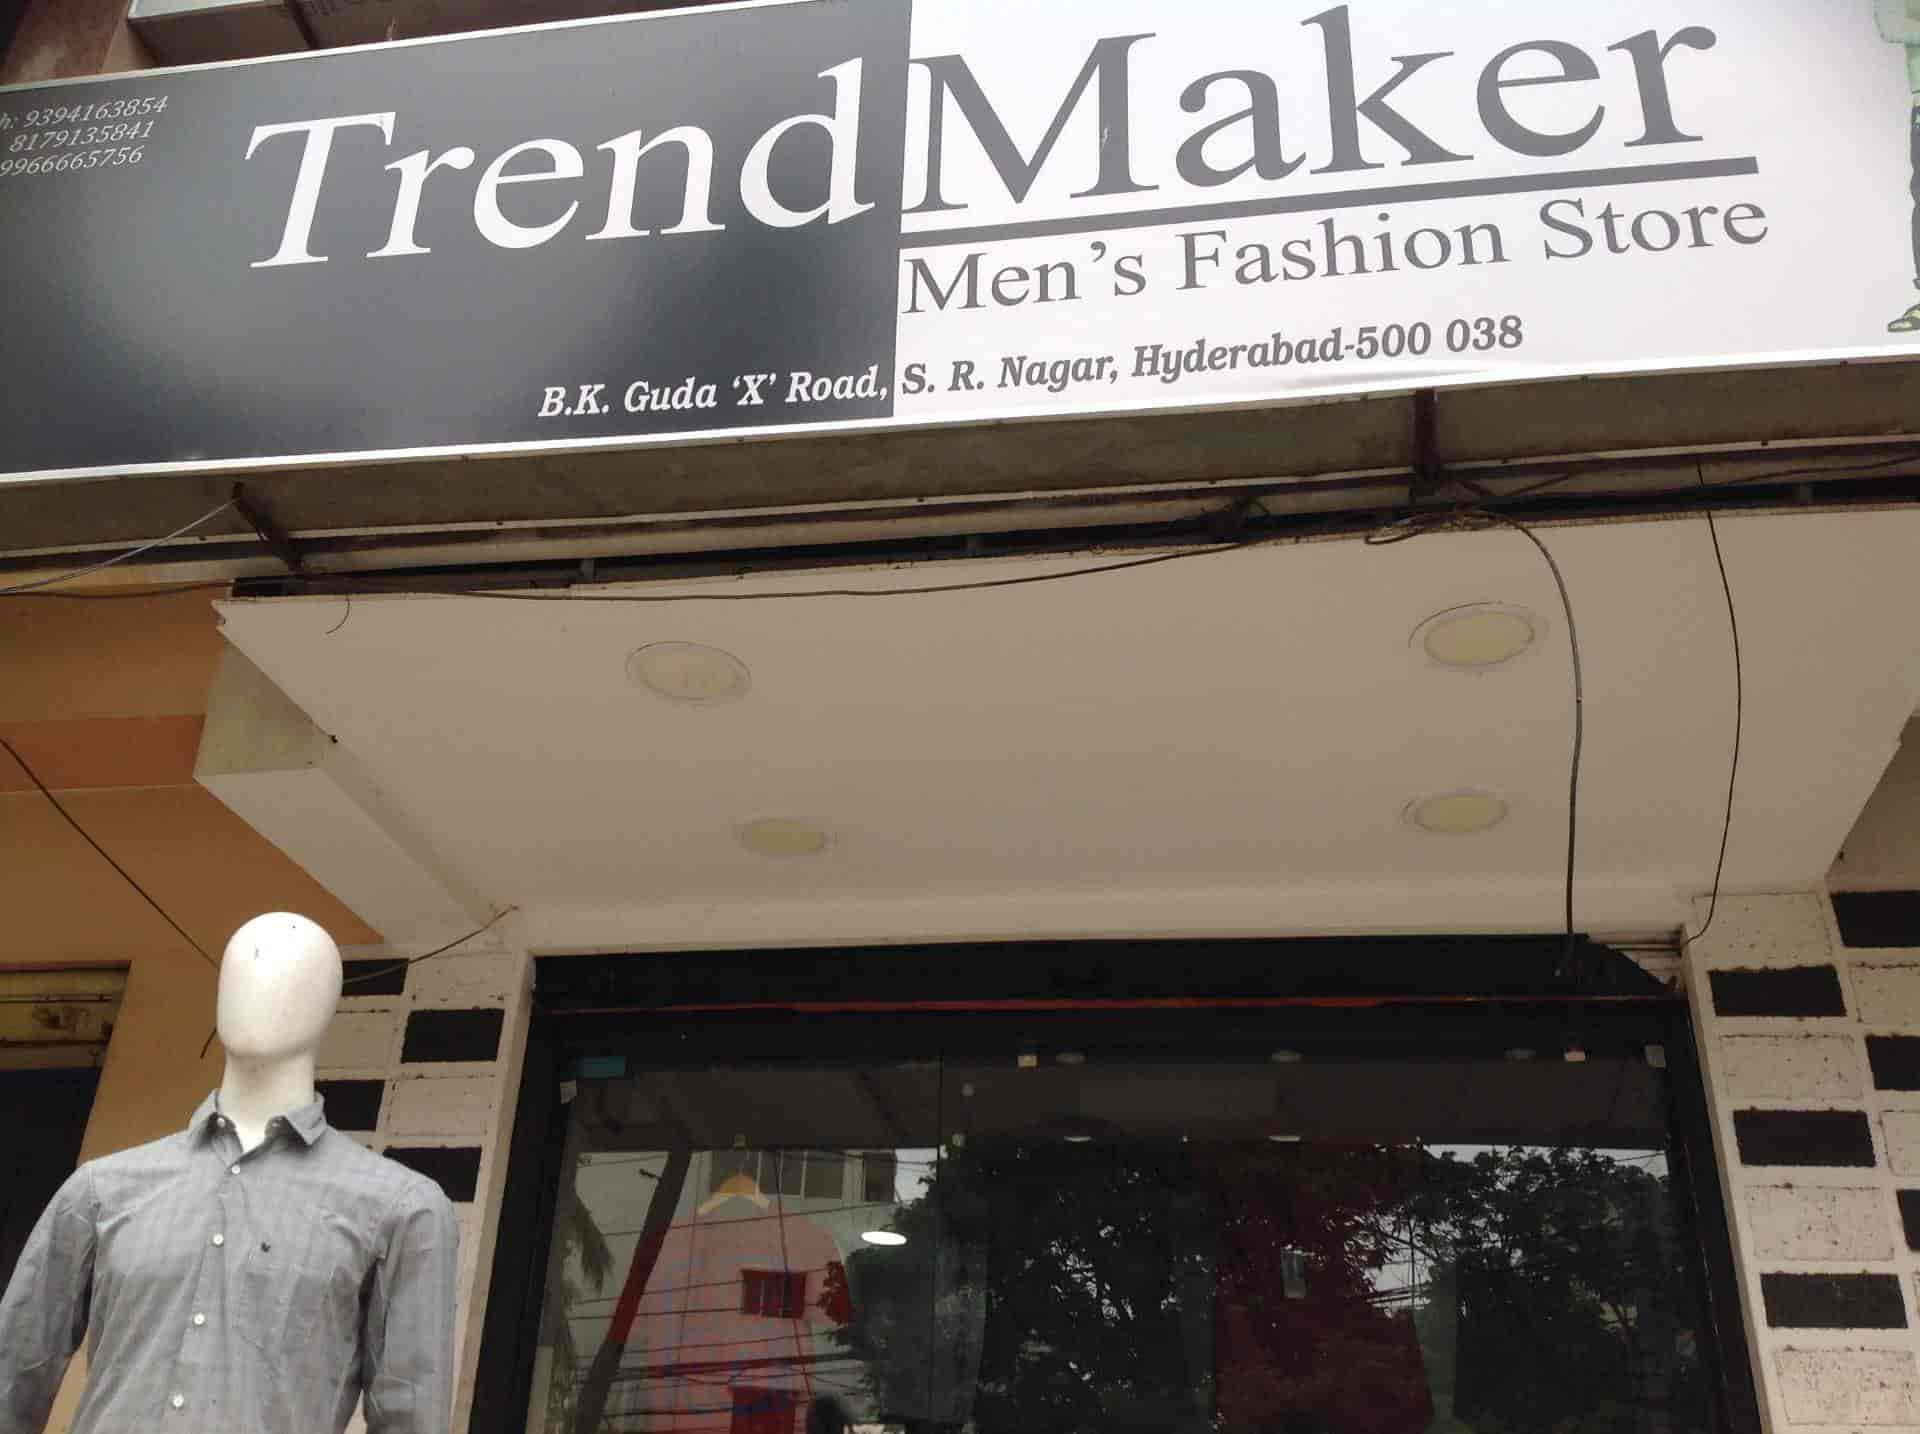 Trend Maker Photos Sanjeeva Reddy Nagar Hyderabad Pictures Images Gallery Justdial